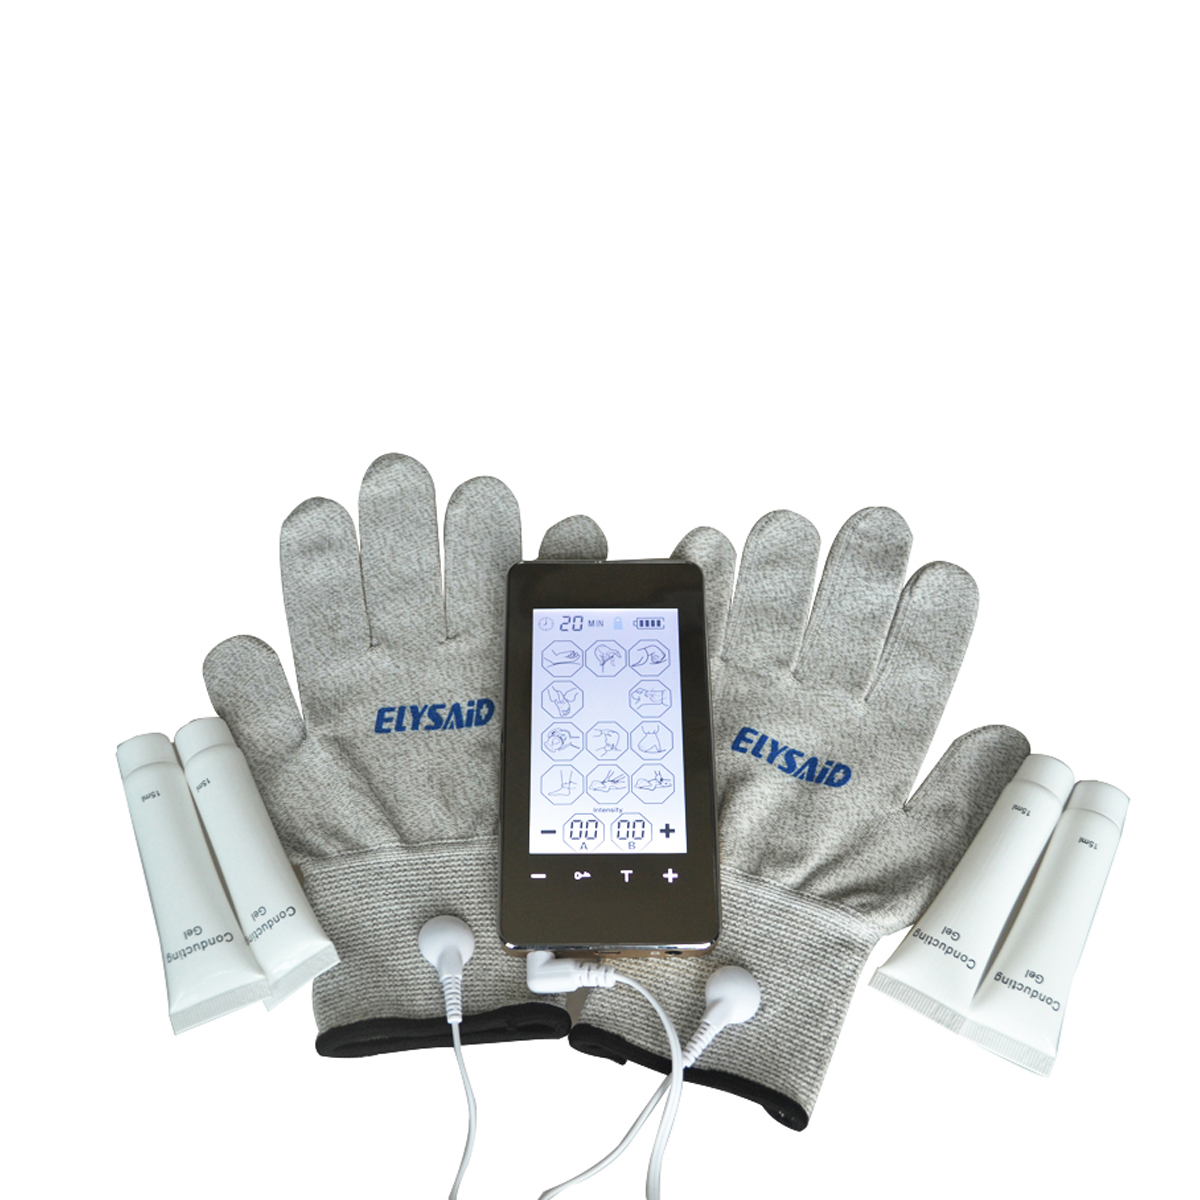 Dual Channel Touch Screen Smart Electronic Pulse Massager 12Mode Electro Device With Conductive Glove And 4 Pcs Conducting Gel Dual Channel Touch Screen Smart Electronic Pulse Massager 12Mode Electro Device With Conductive Glove And 4 Pcs Conducting Gel